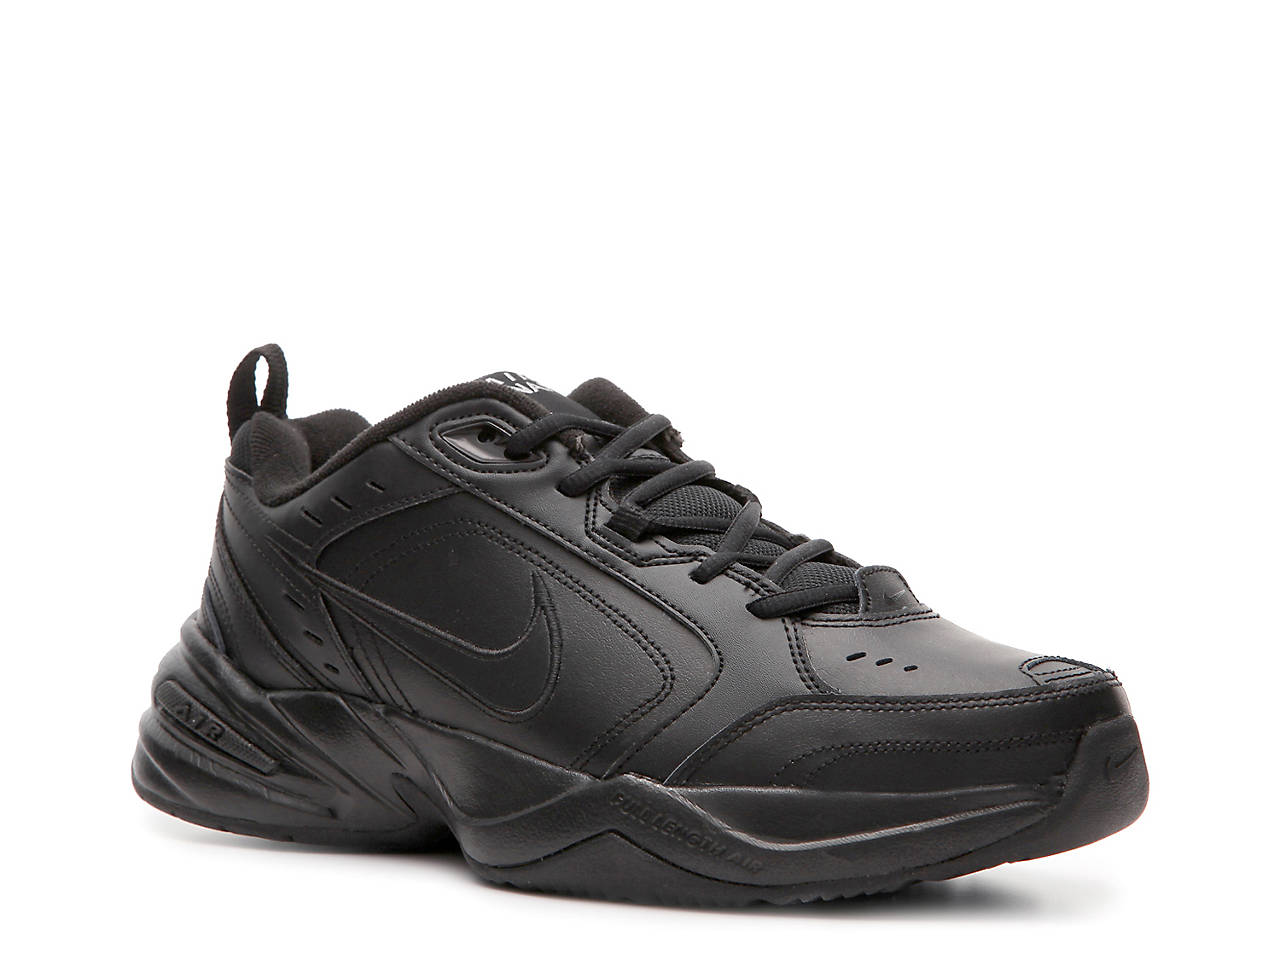 71048cebc207 Nike. Air Monarch IV Training Shoe - Men s